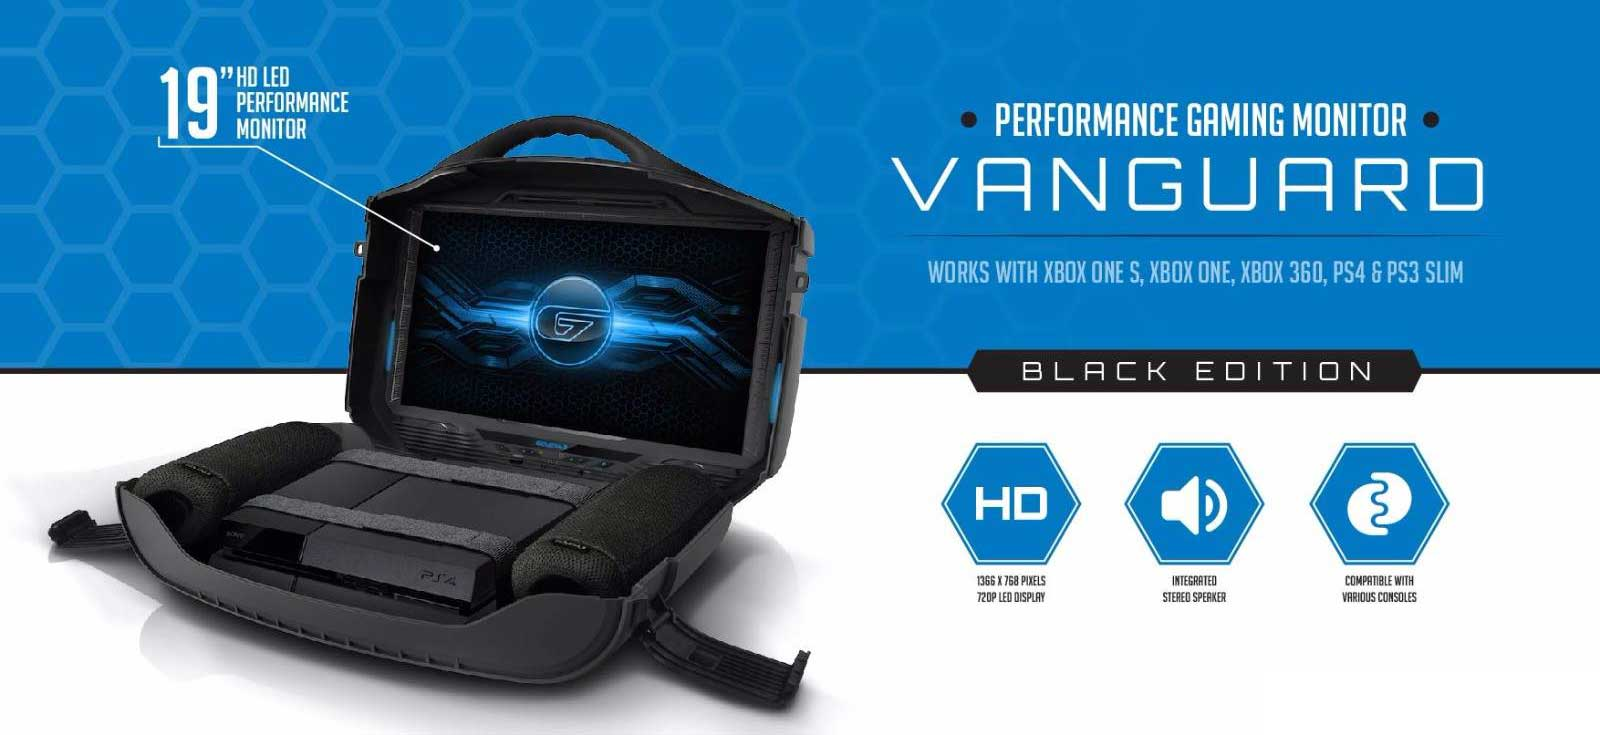 gaems vanguard portable monitor 08 - مانیتور قابل حمل GAEMS مدل Vanguard